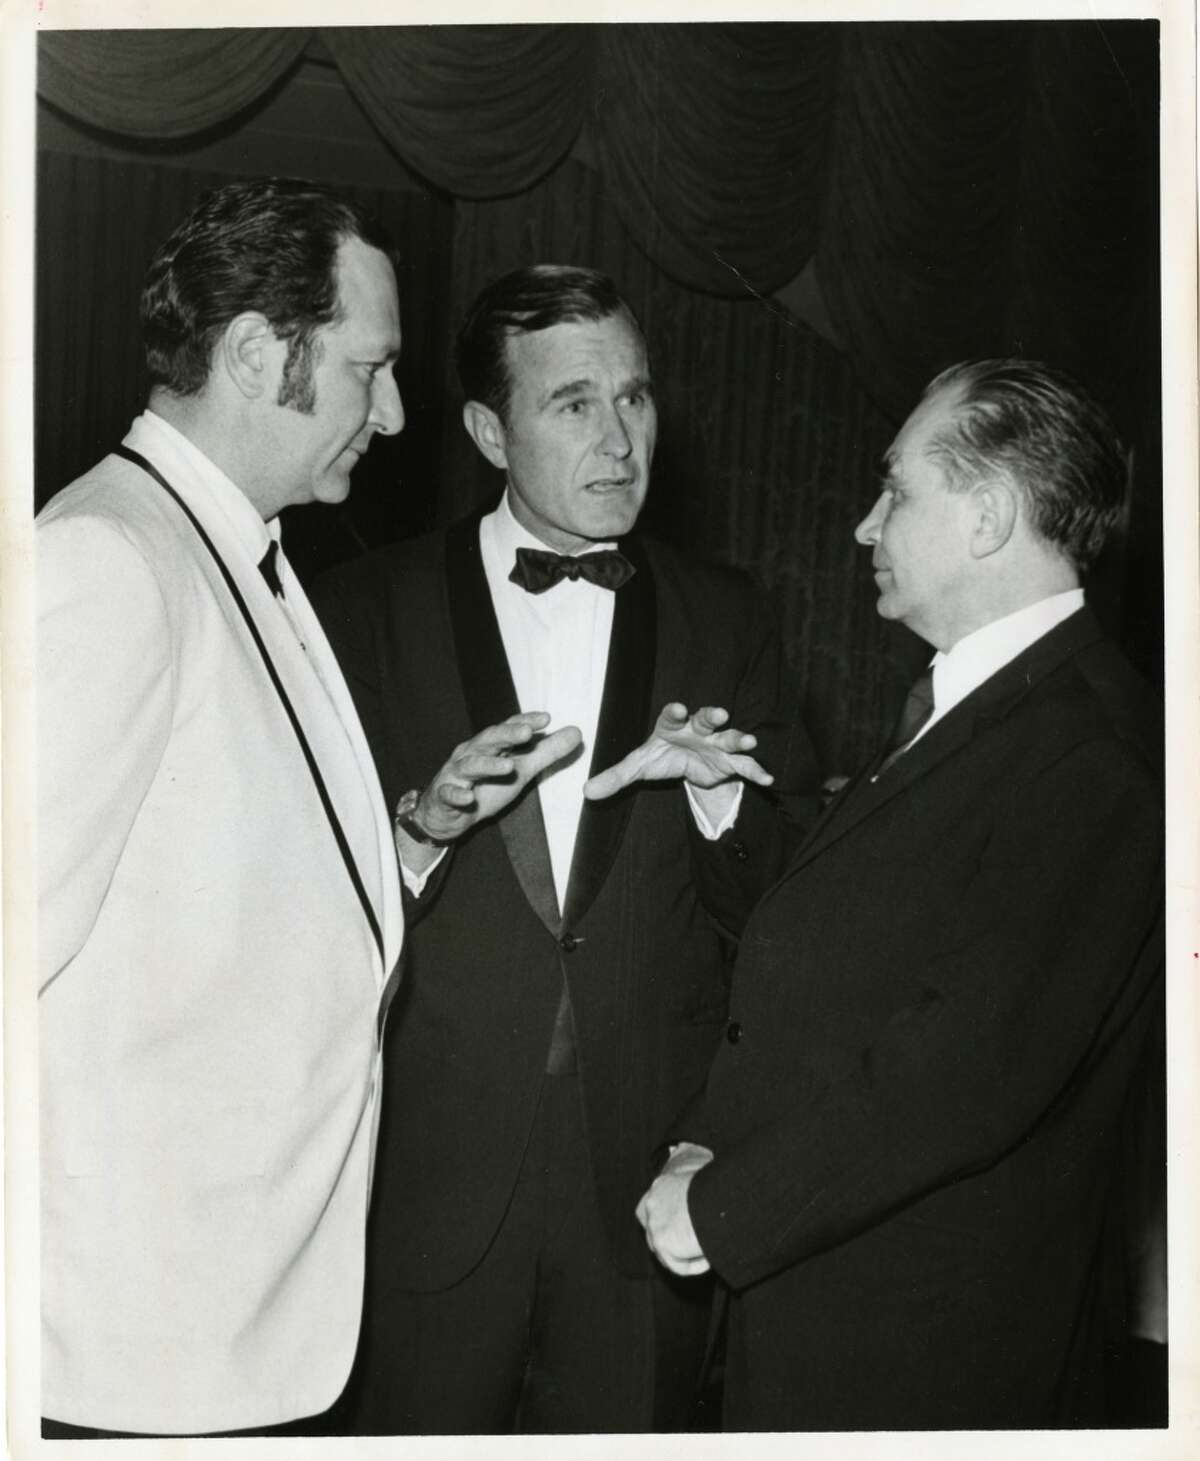 (From left) Professor Nicolai Blokhin of Moscow, U.S. Rep. George Bush and Dr. Emil Freireich of Houston spoke at dinner given by Houston chapter of the Leukemia Society of America in 1970. Bela Ugrin / Houston Post